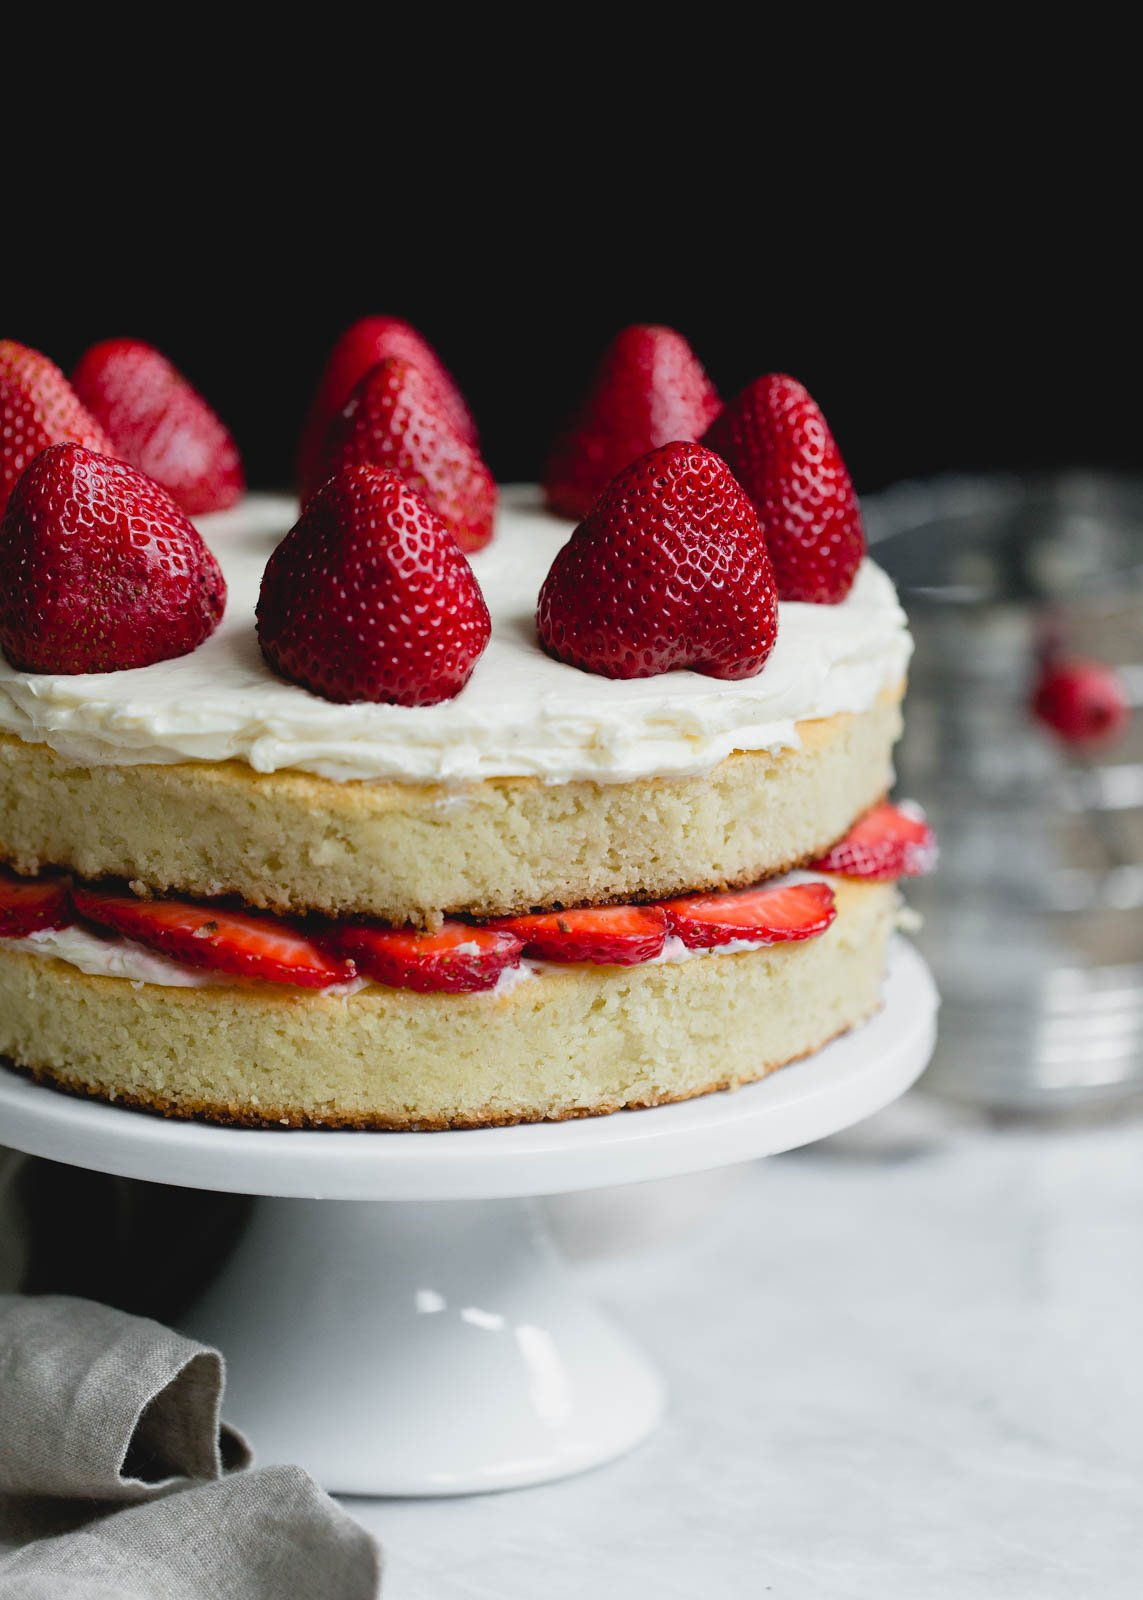 Beautiful Strawberry Cake Images : Almond Flour Strawberry Shortcake Cake with Vanilla Bean ...